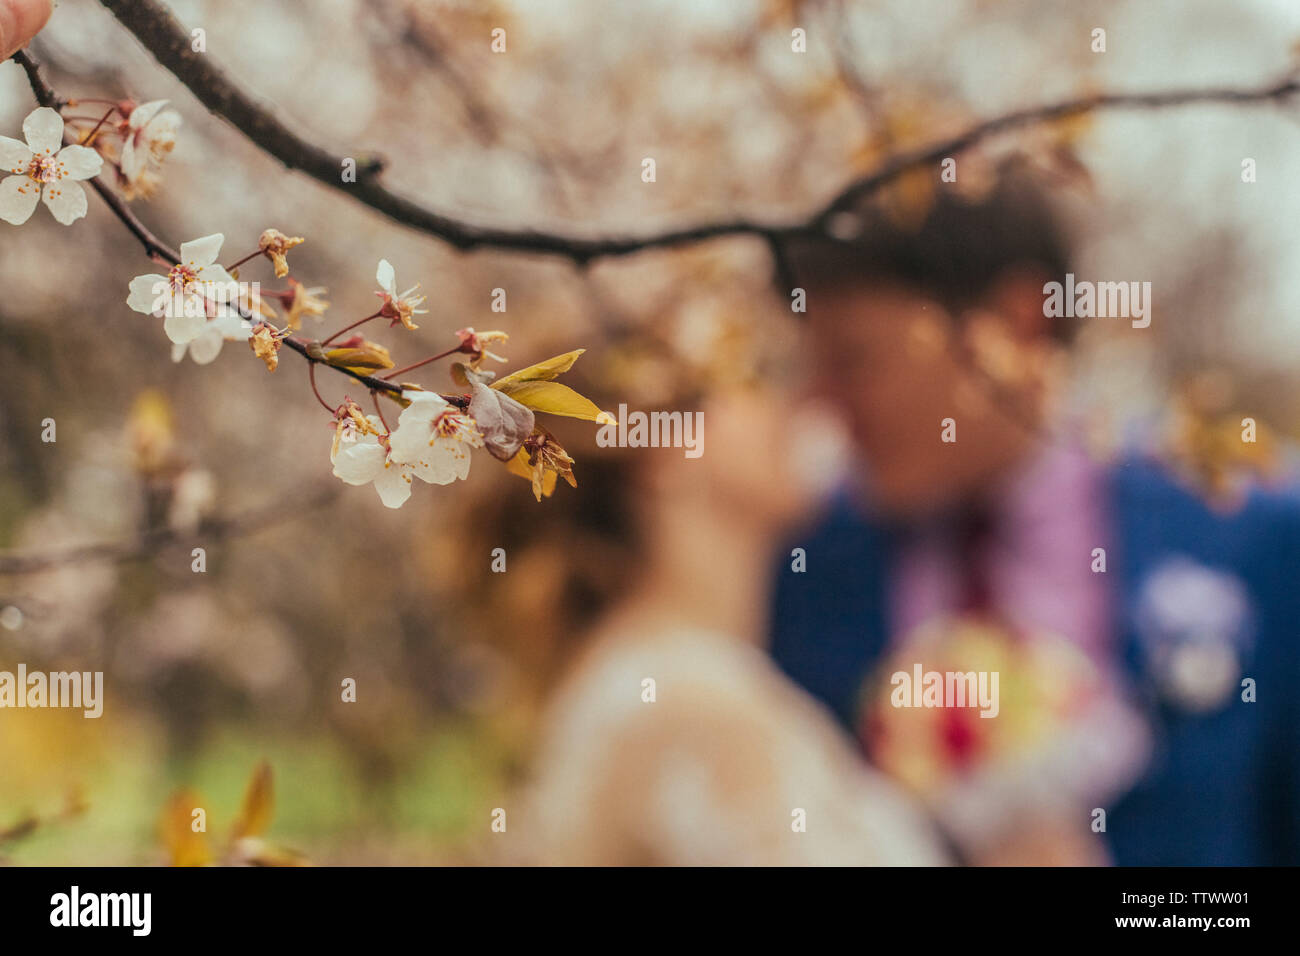 Bride and Groom wedding day - Stock Image